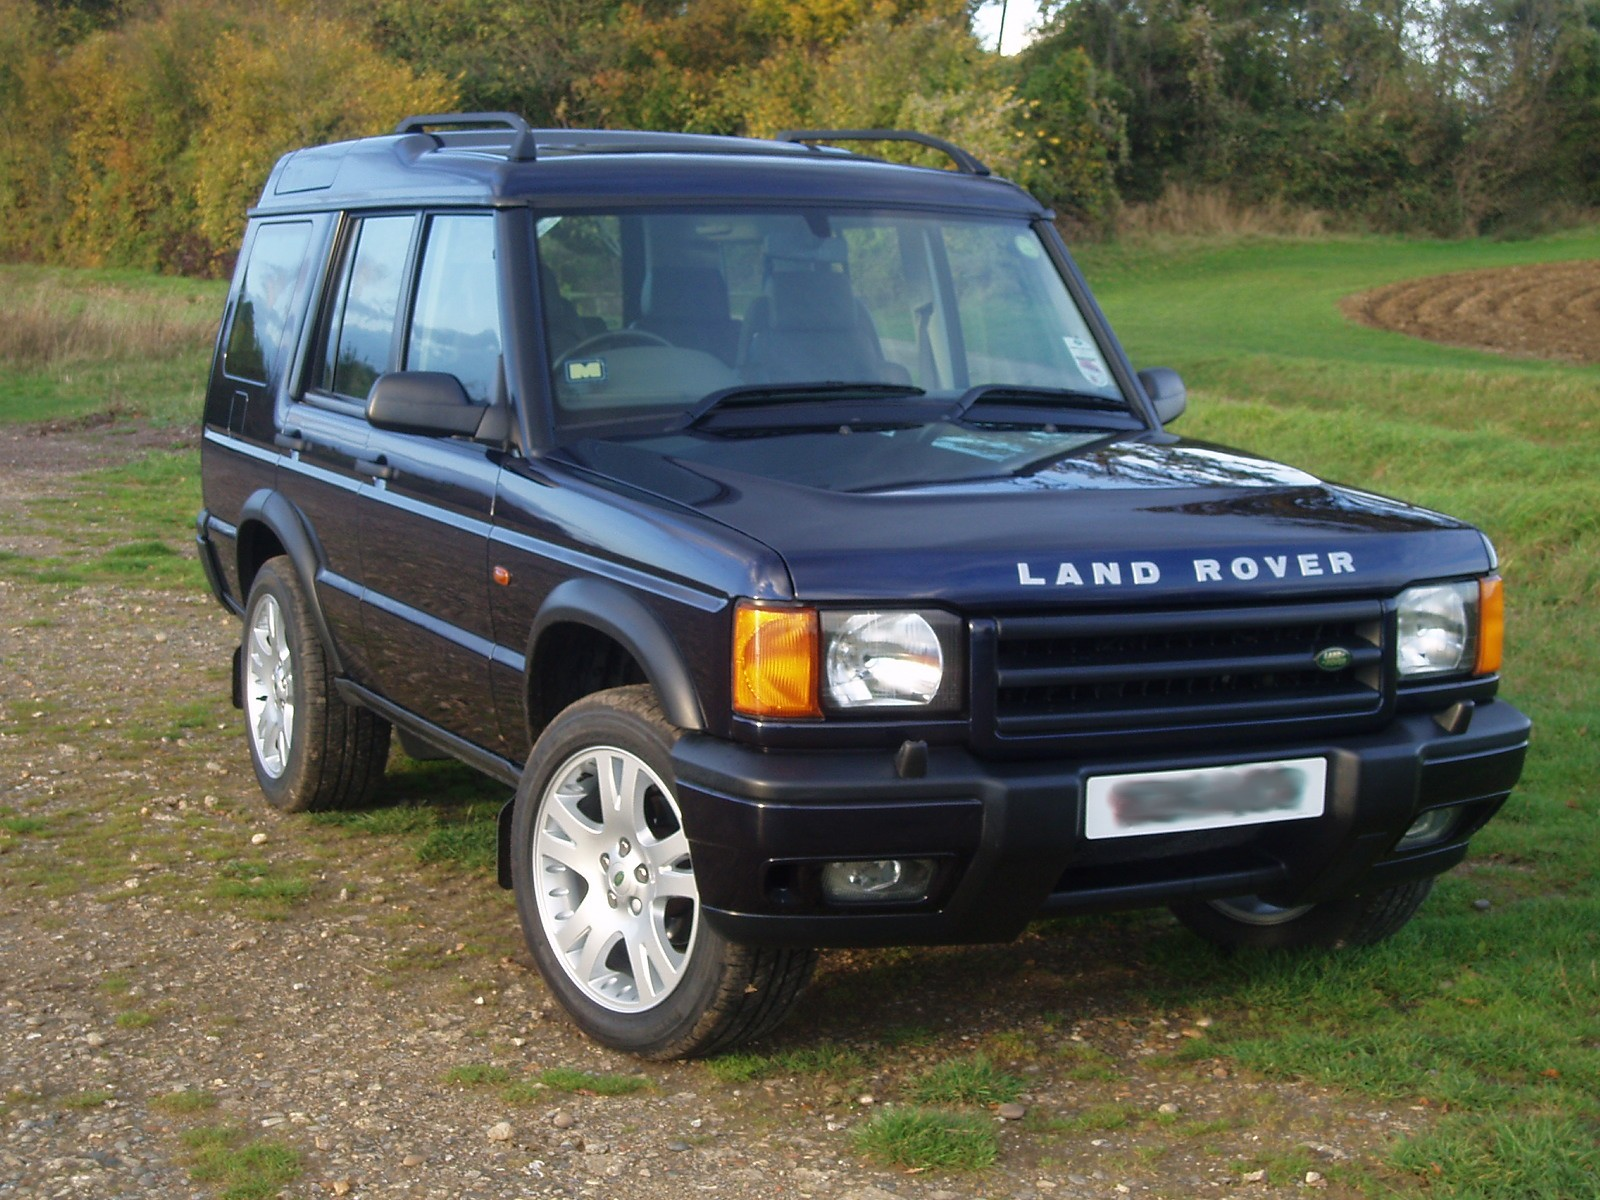 land rover discovery series ii 2000 wallpaper 1600x1200 217415 wallpaperup. Black Bedroom Furniture Sets. Home Design Ideas